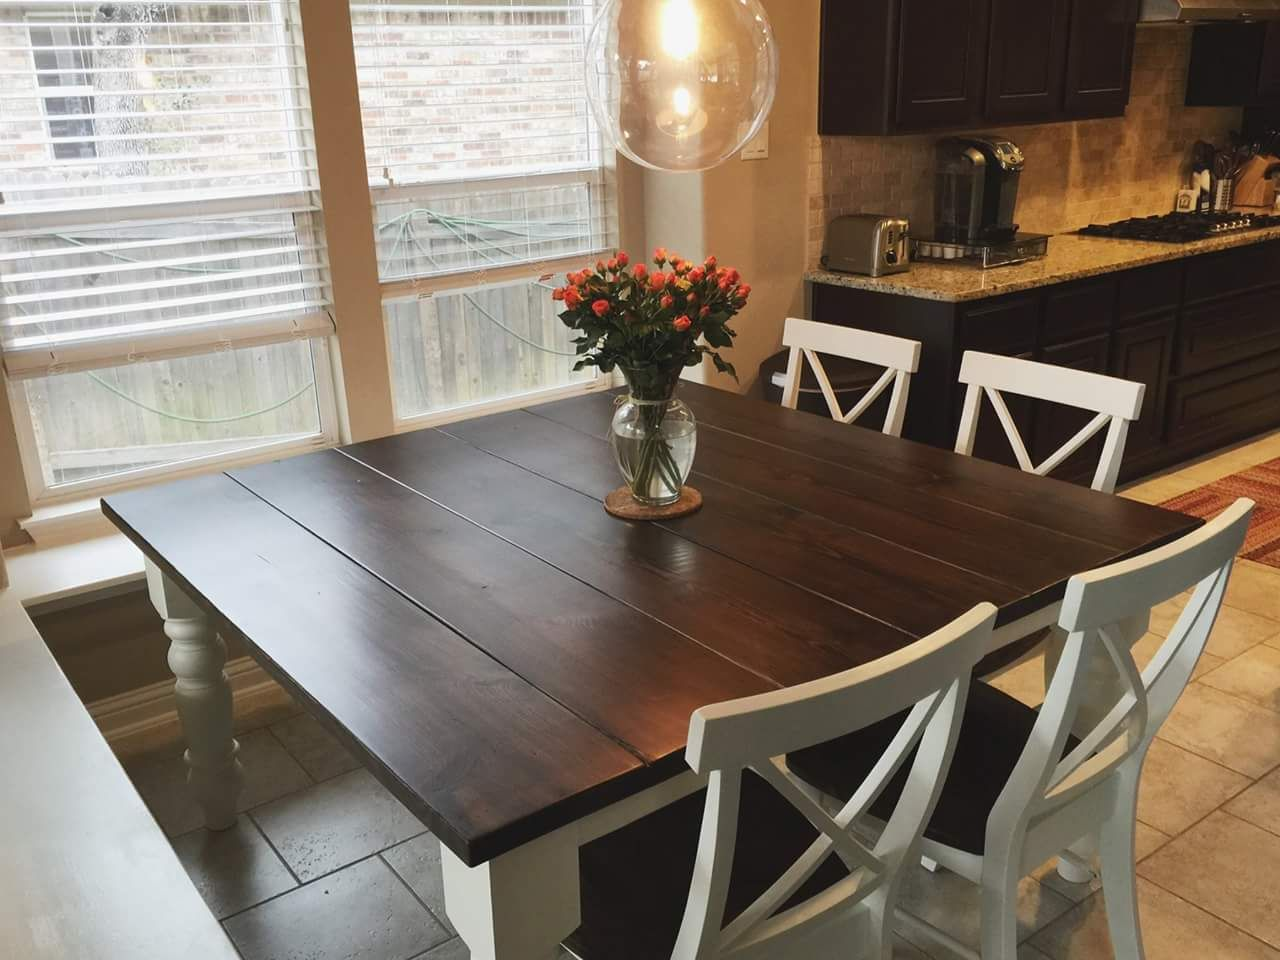 farm table kitchen square dining table with side tables to extend the size Brilliant The side tables can be used as a buffet table or couch table until needed to ex